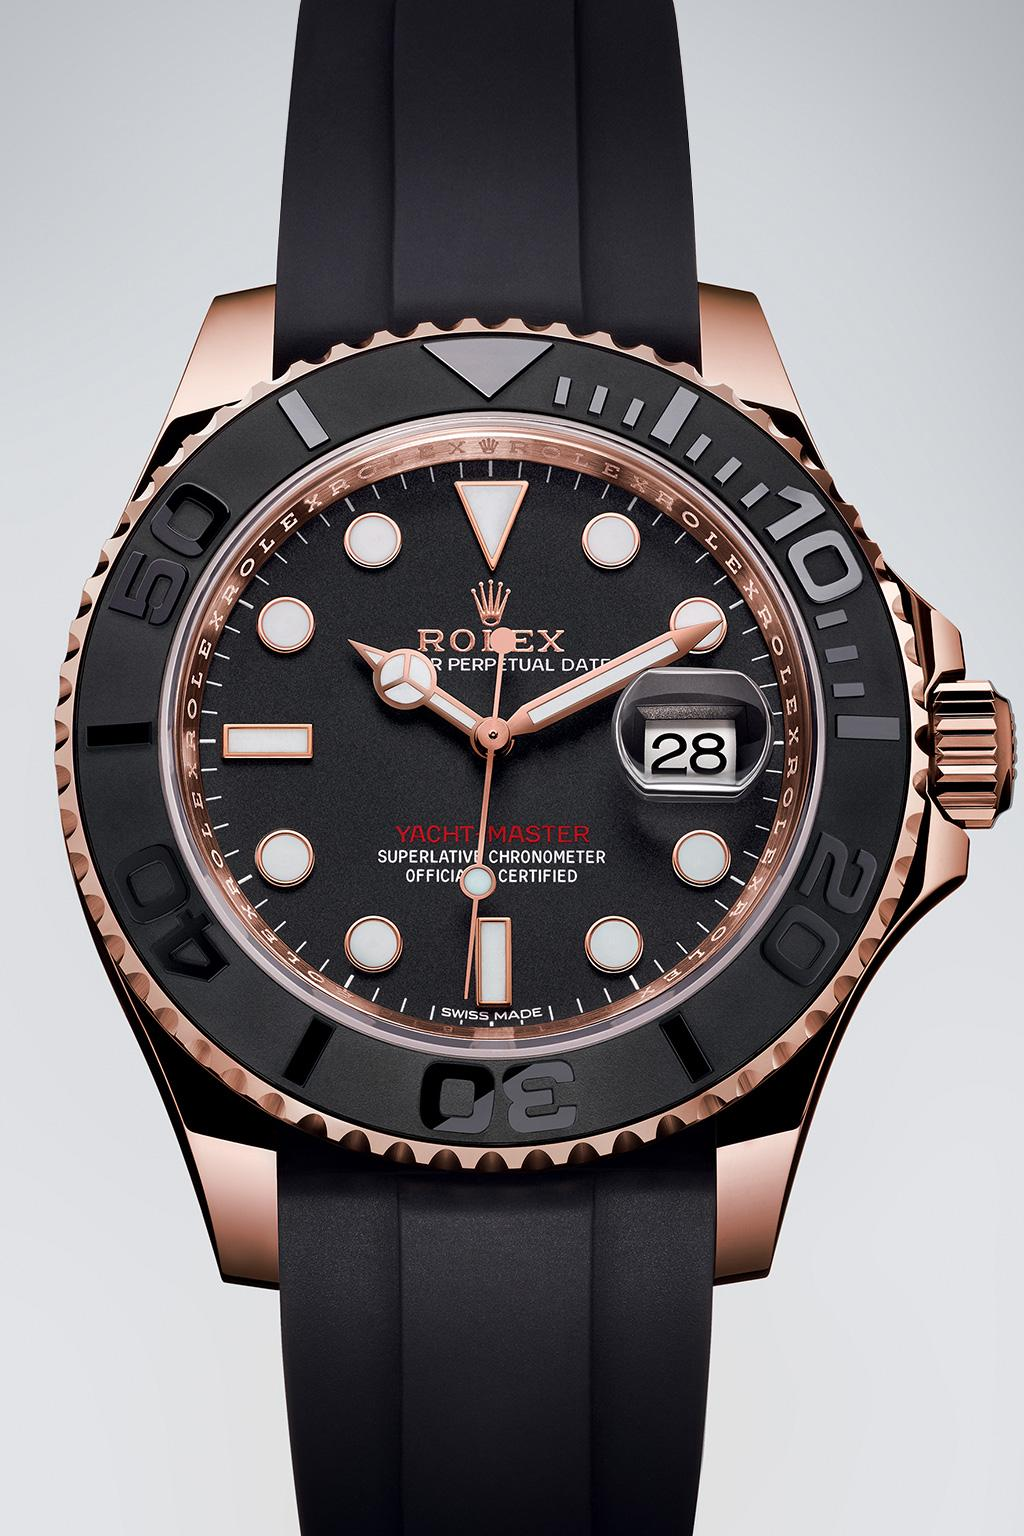 Style of the Yacht-Master 40 THE WATCH OF THE OPEN SEAS The Yacht-Master is revered for its casual yet purposeful allure.